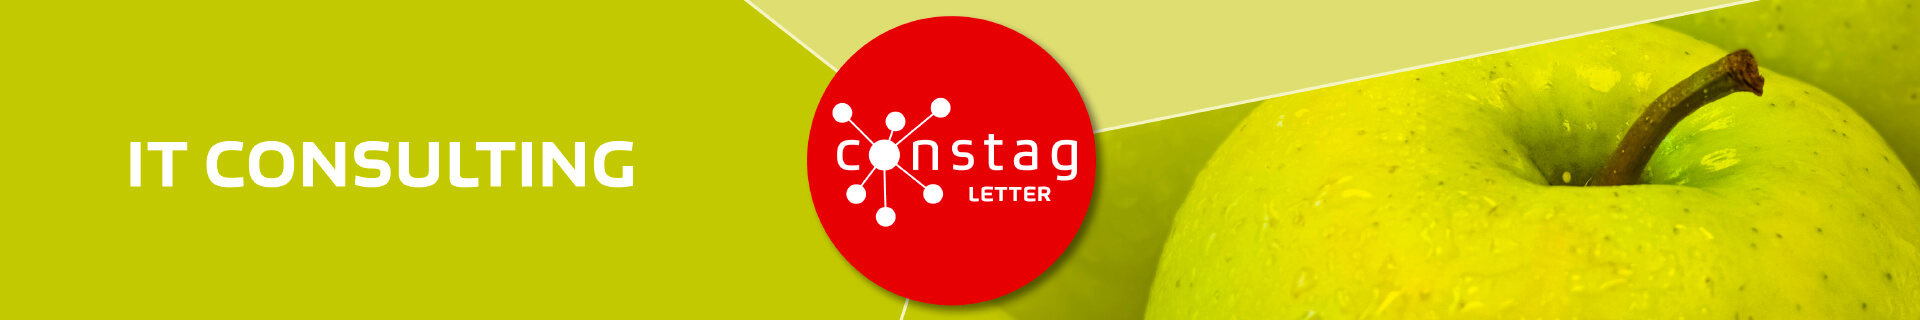 ConstagLETTER IT-Consulting